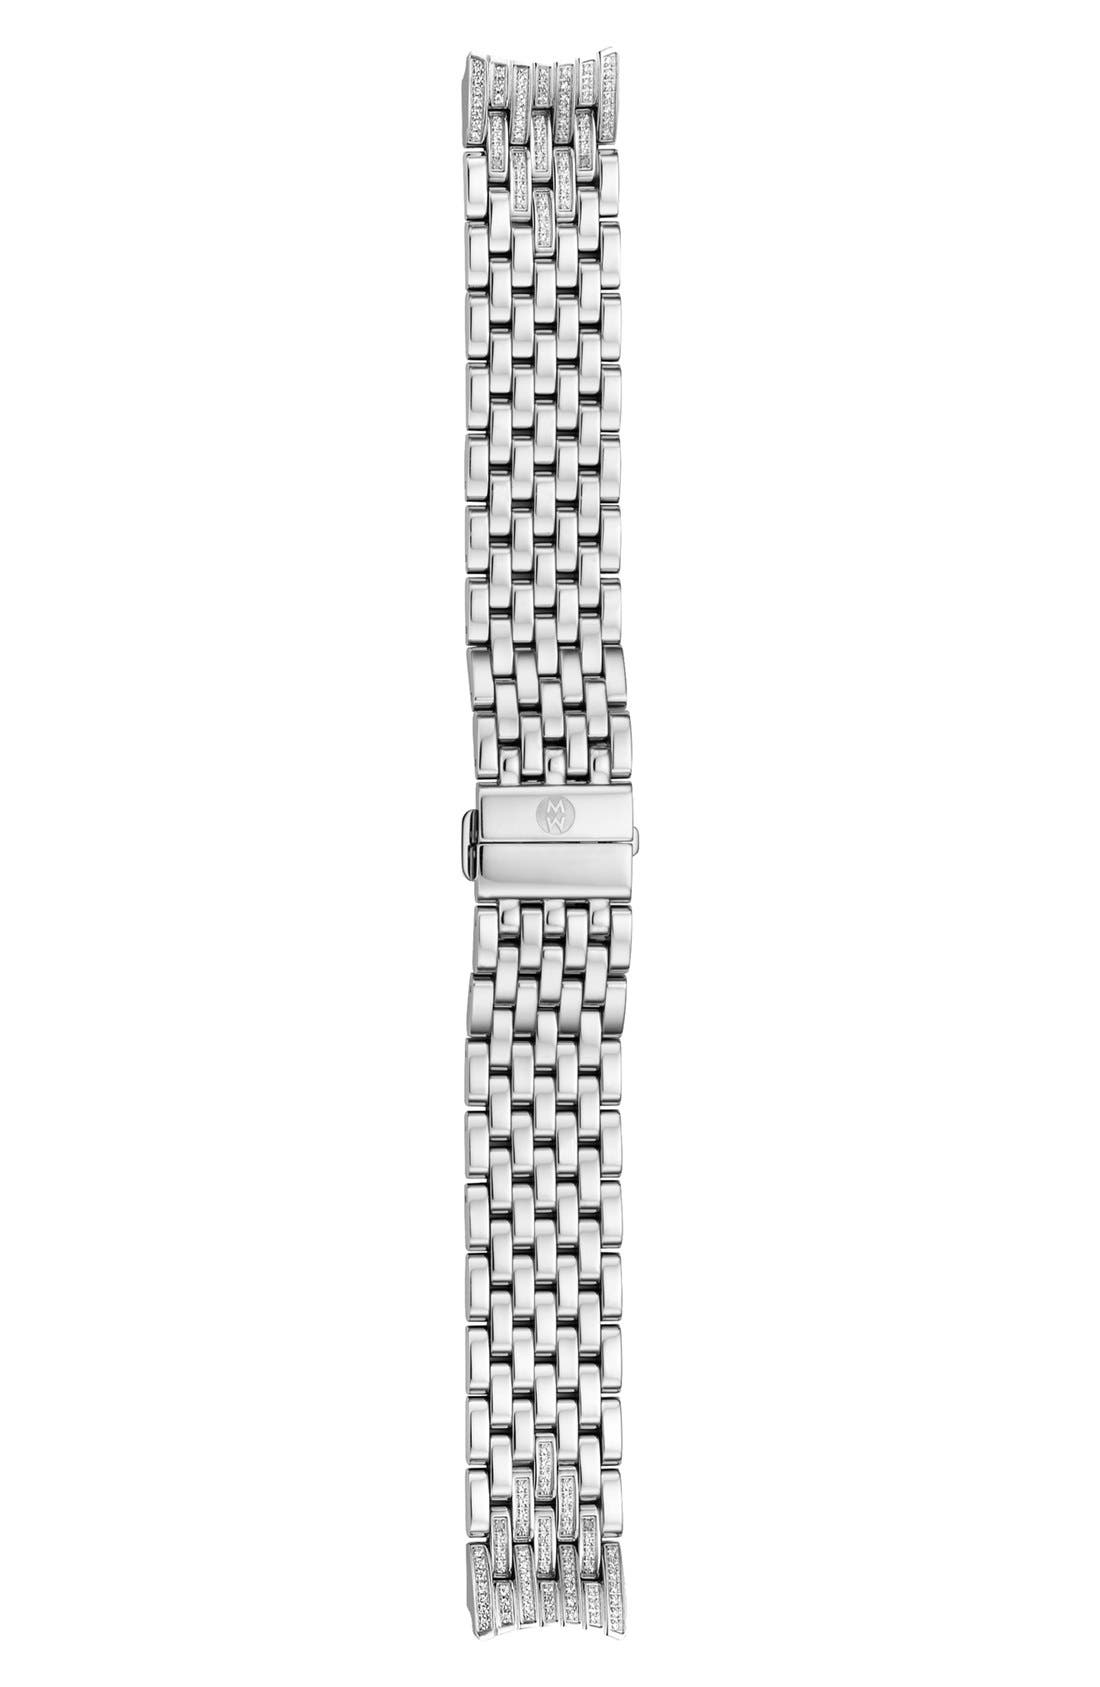 Alternate Image 1 Selected - MICHELE 'Serein' 18mm Diamond Bracelet Watch Band